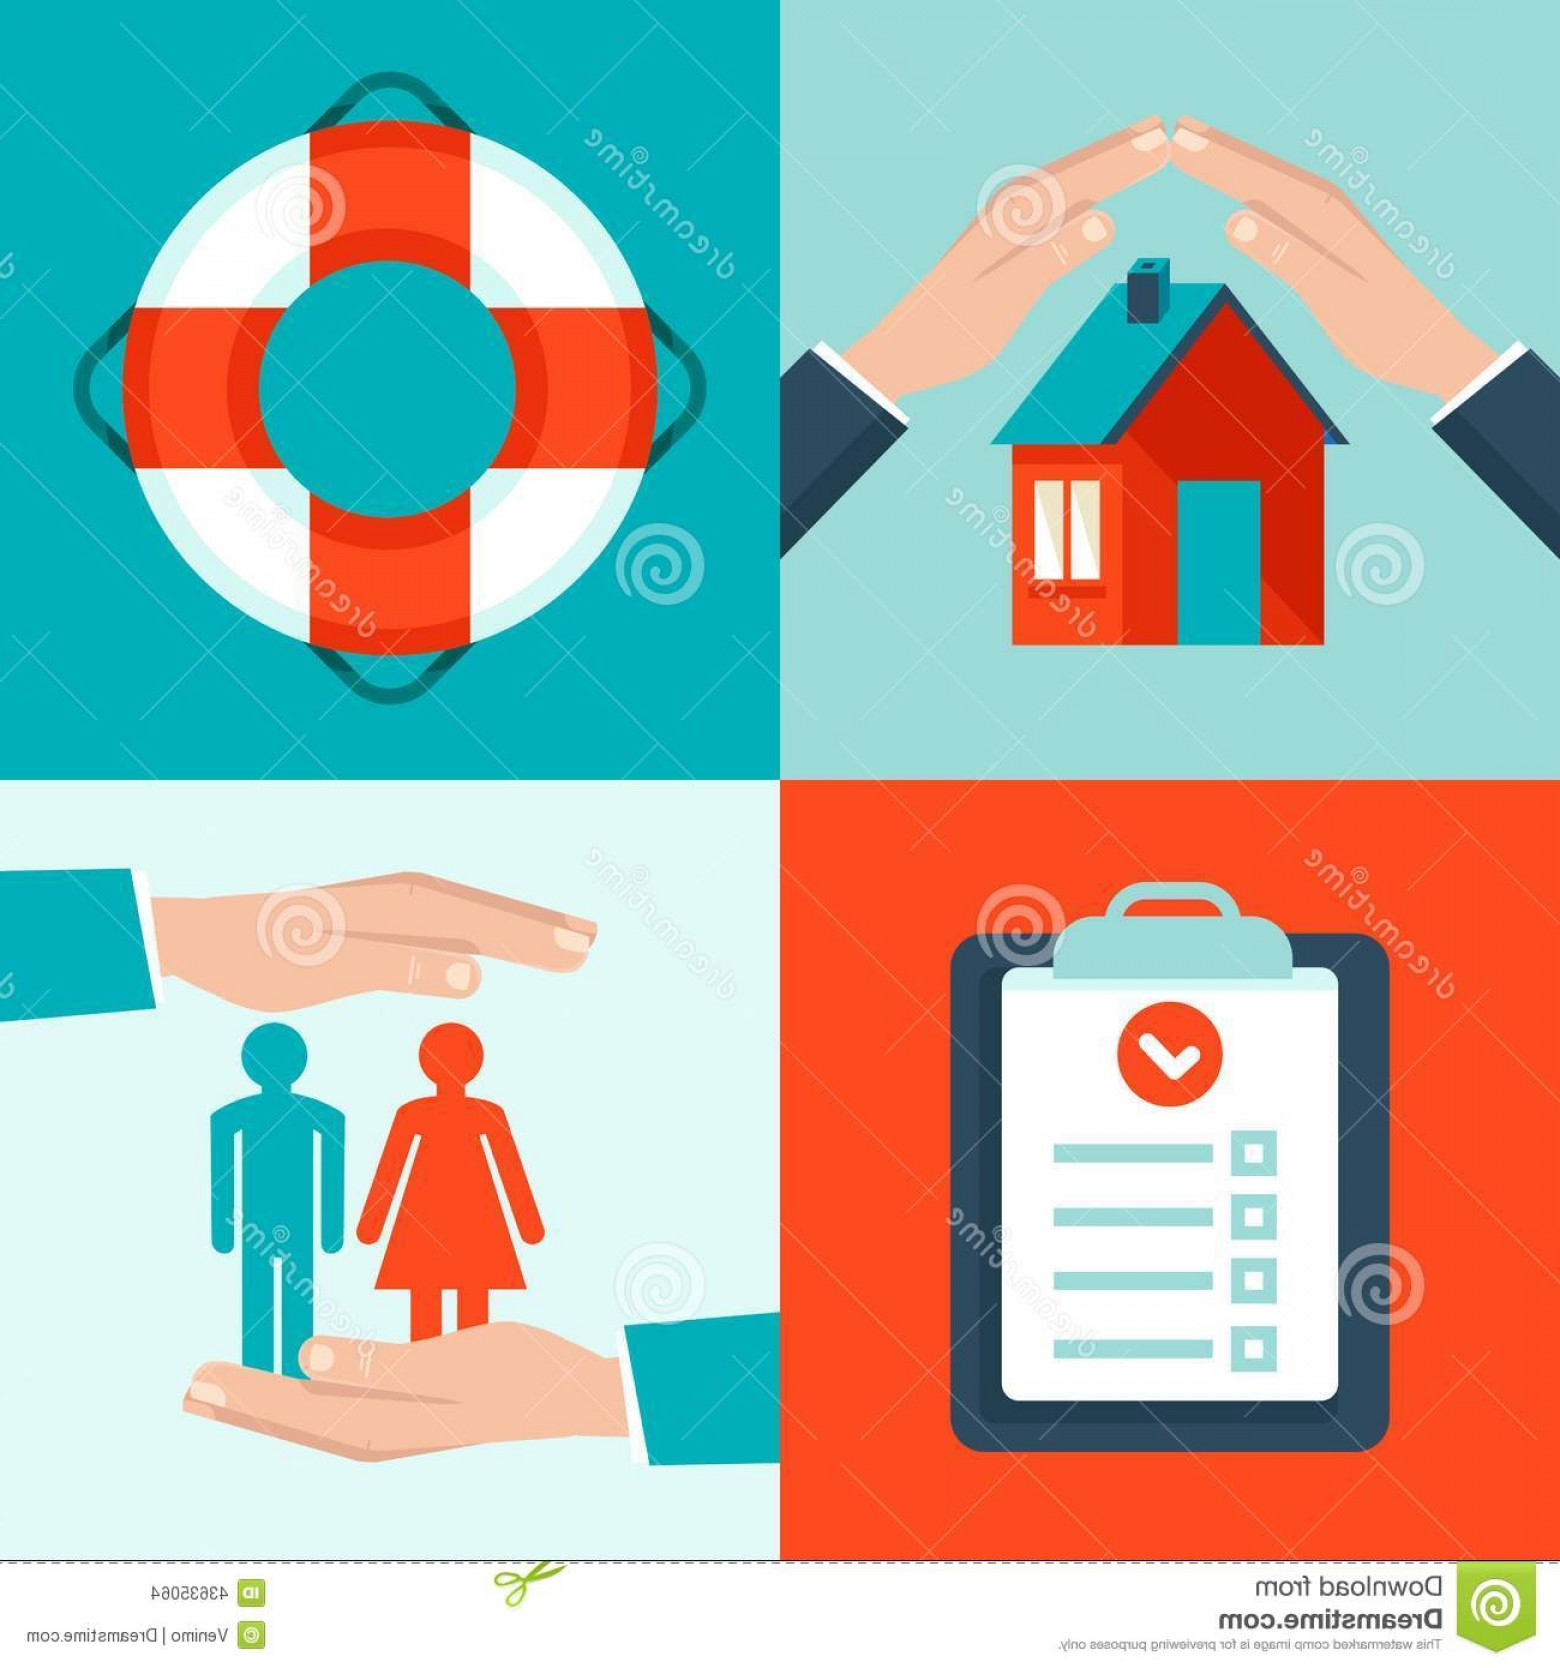 Vector Insurance: Stock Illustration Vector Insurance Concepts Flat Style Icons Infographic Design Elements Protect Safe Health Property Image